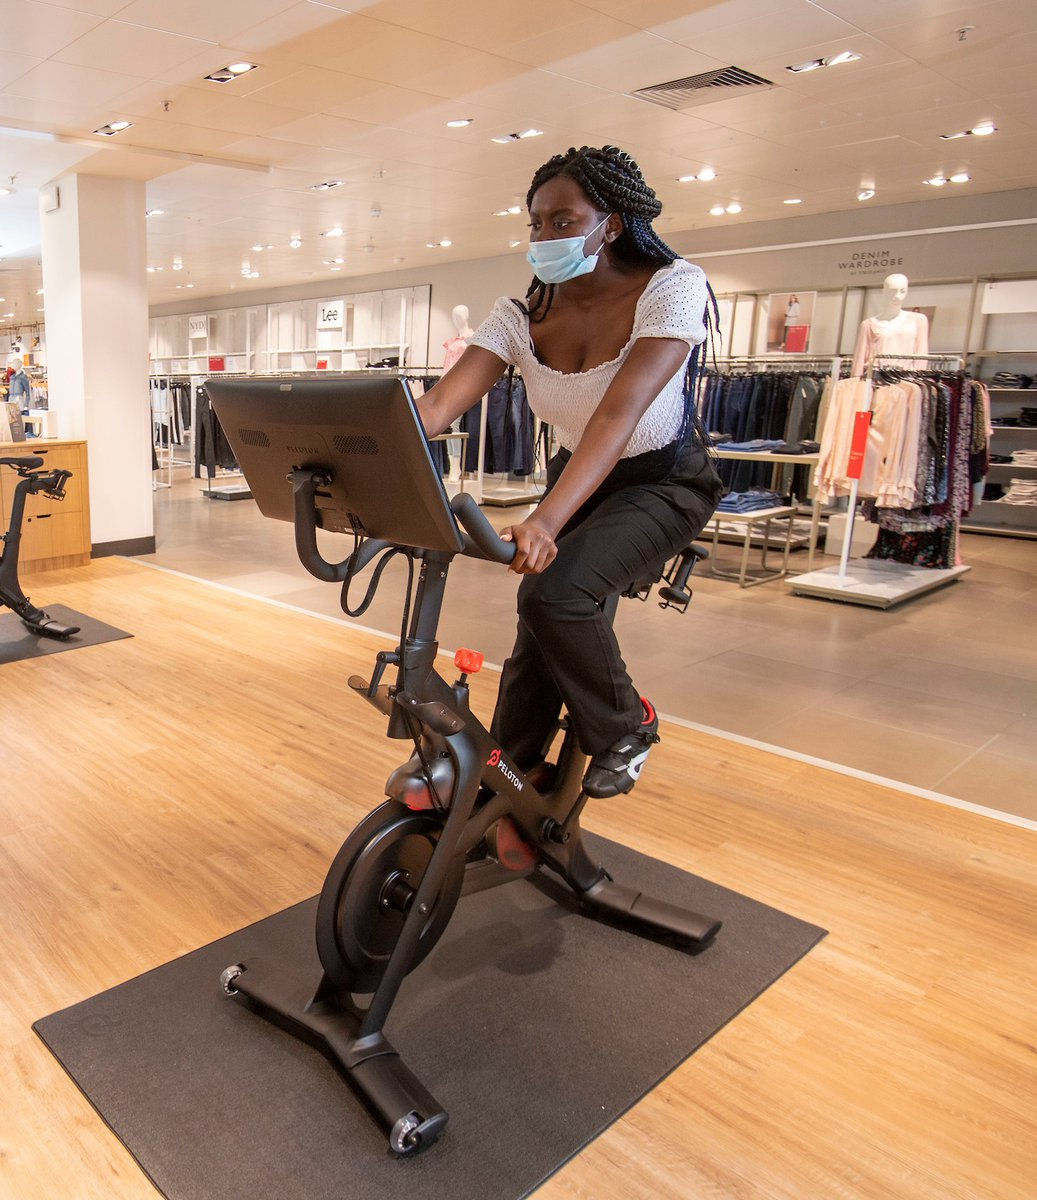 Just launched at John Lewis Oxford St. & in 8 further stores throughout the coming months, we're excited to be the exclusive retailer partner of @onepeloton in the UK. Visit us in-store to try the Peloton bike alongside a personalised walk-through from our Peloton experts 🚴 https://t.co/wfeE4RSyB8